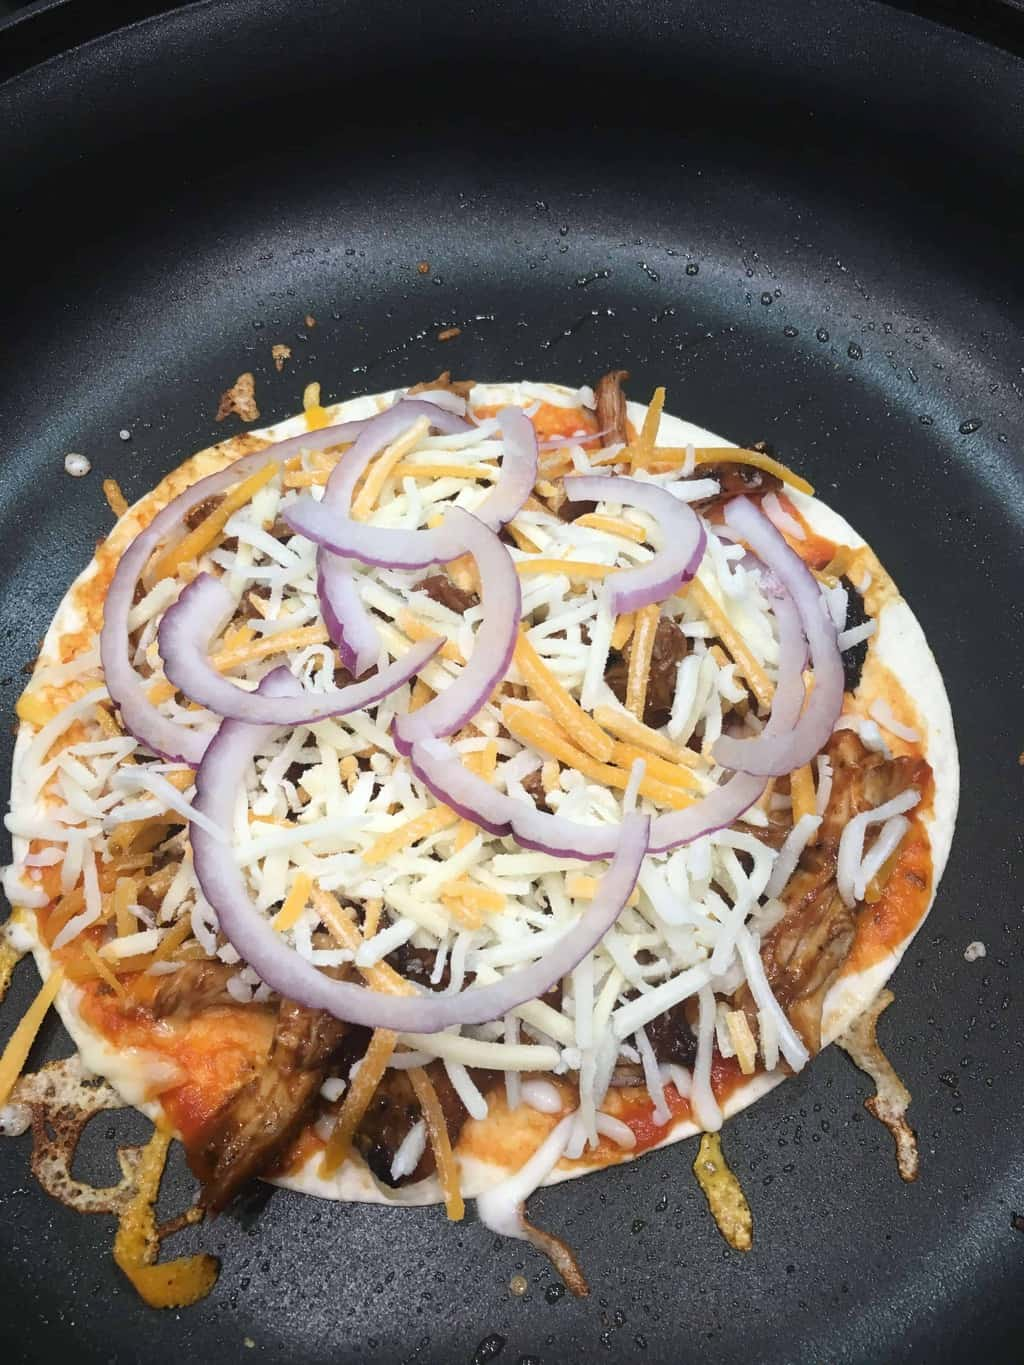 How to make tortilla pizza